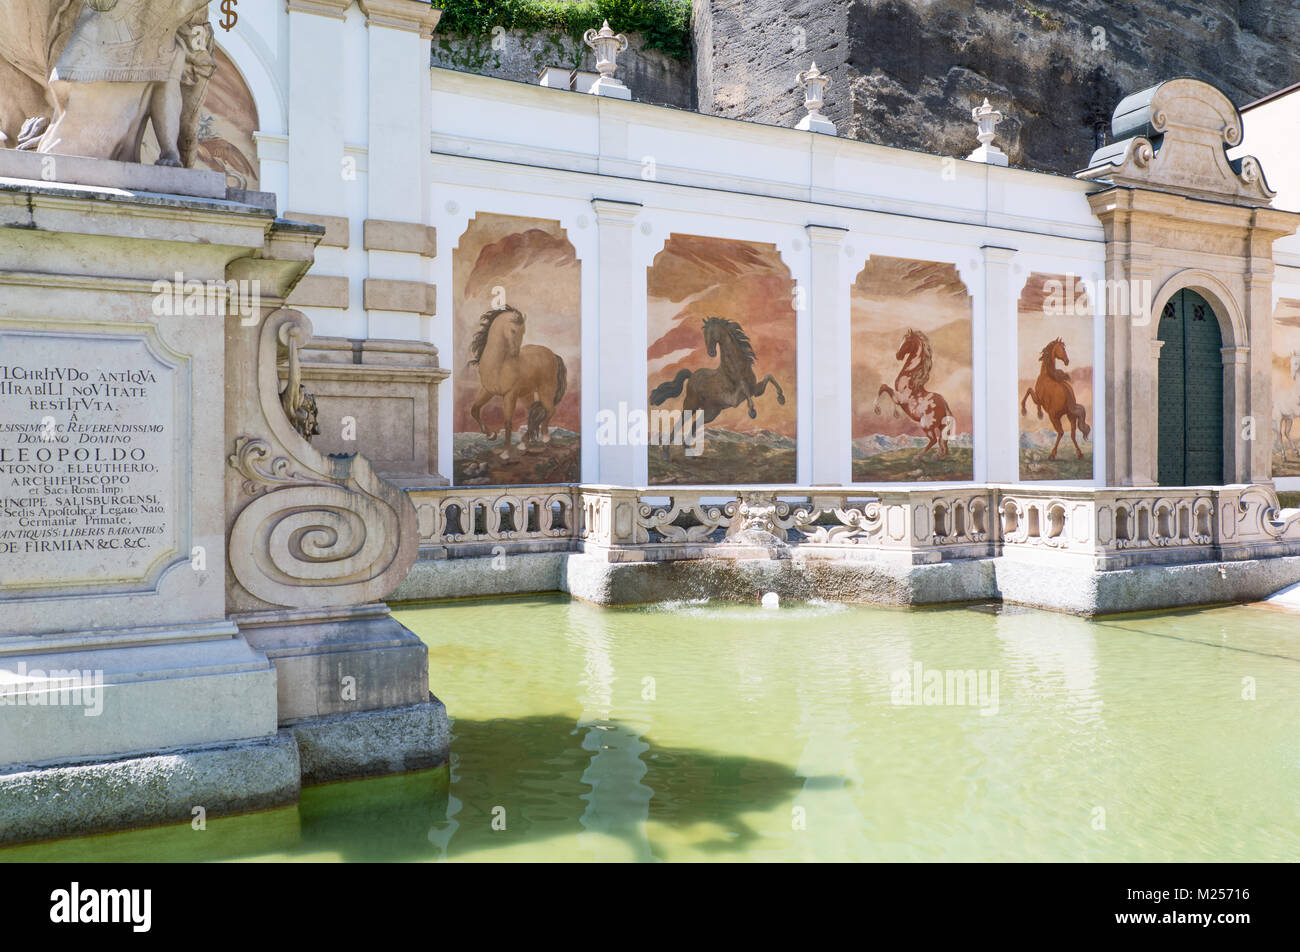 Austria, Salzburg, the Pferde Schwahme equestrian fountain in the old town - Stock Image